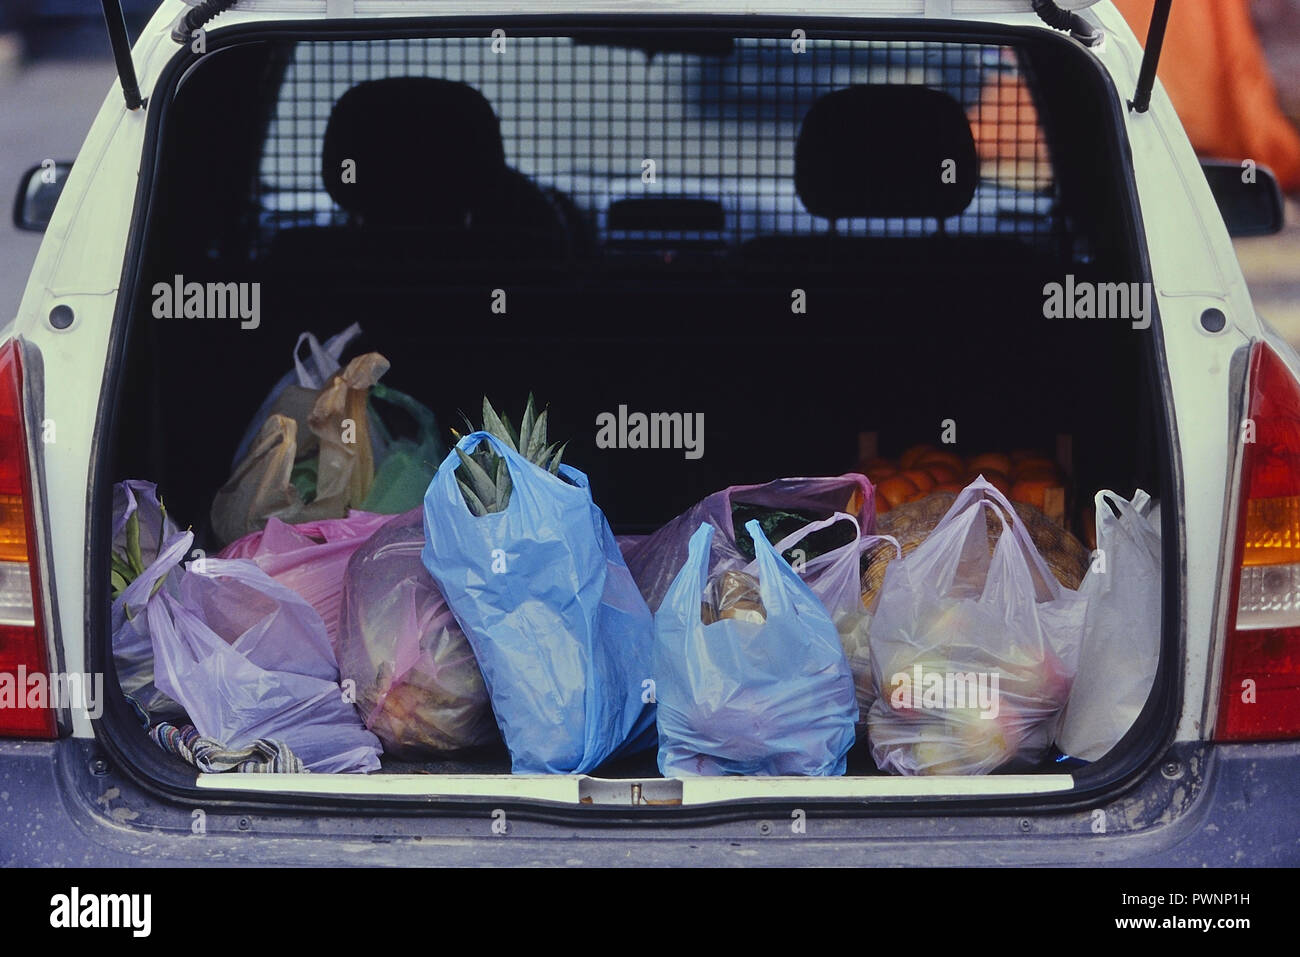 Weekly Shopping Bags Stock Photos Weekly Shopping Bags Stock